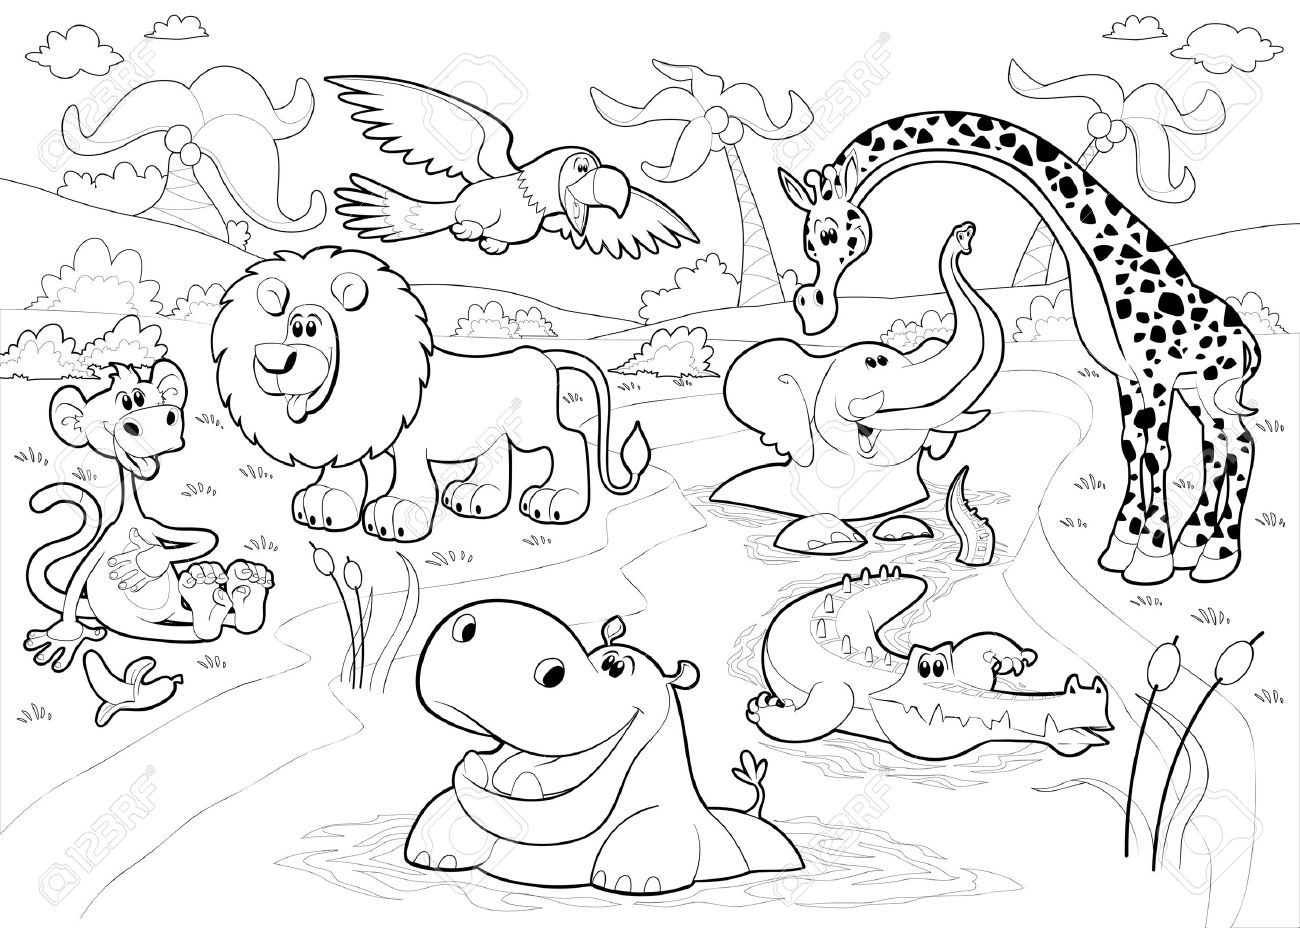 Jungle animals clipart black and white 3 » Clipart Station.